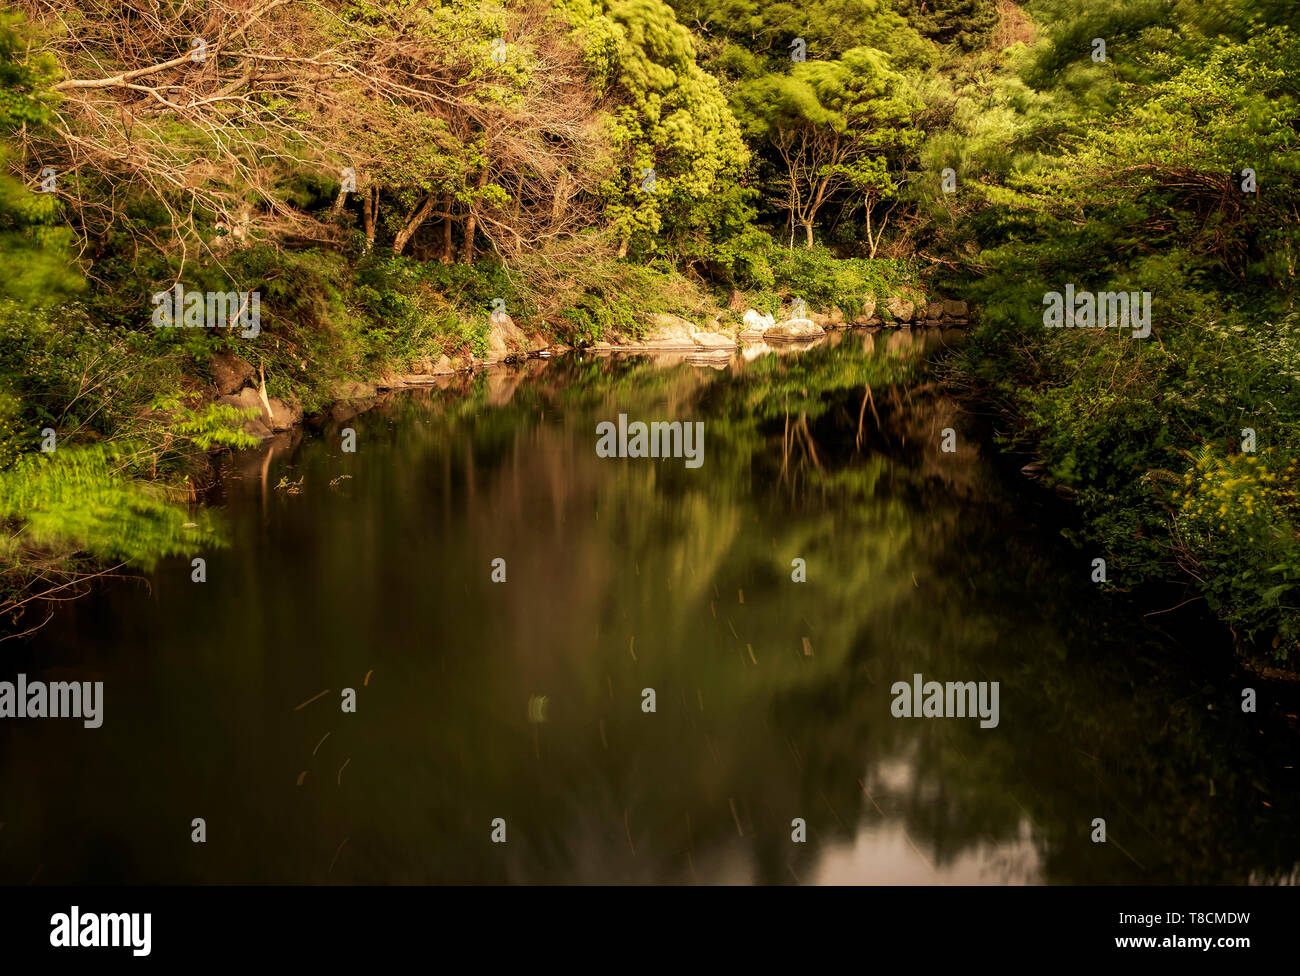 landscape of river and green trees, Jeju, South Korea - Stock Image